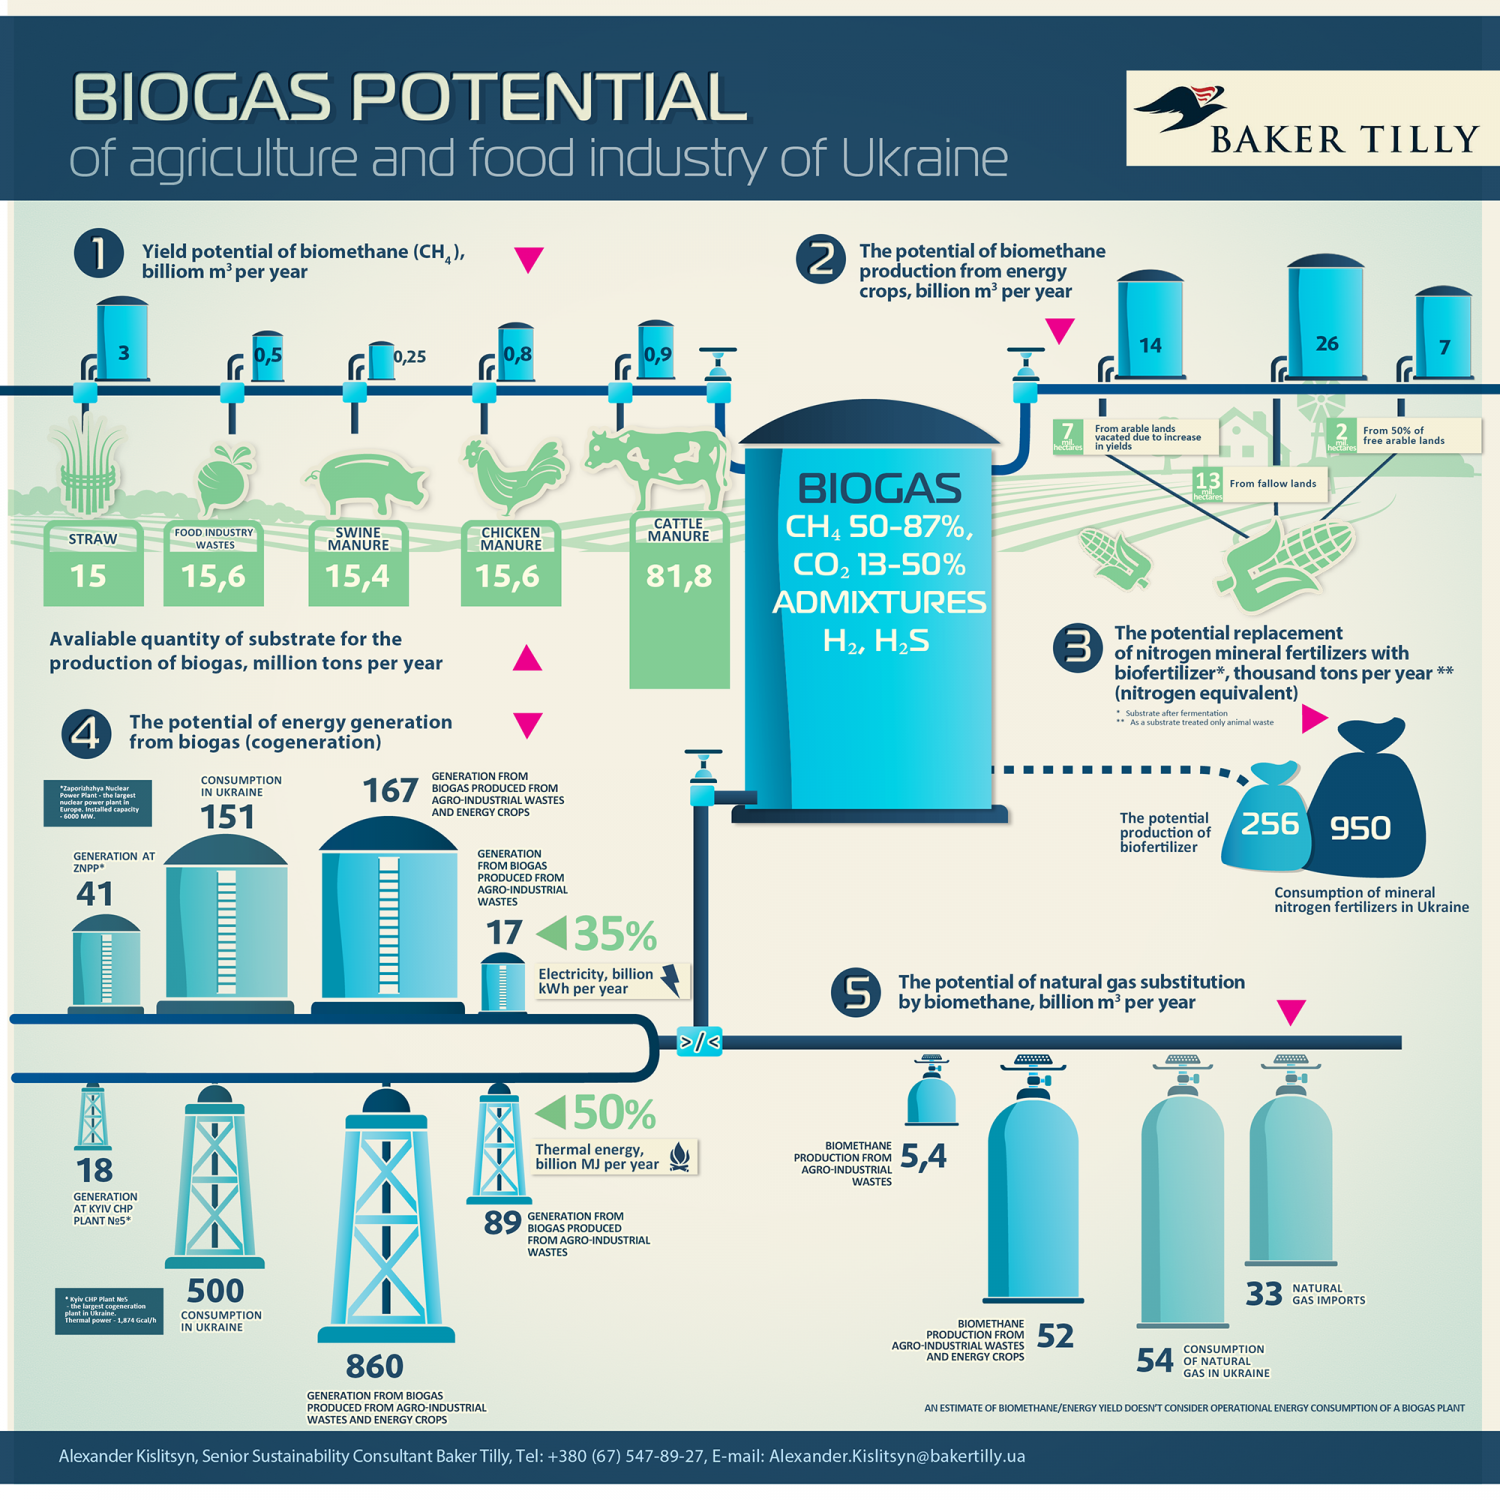 Biogas Potential Of Agriculture And Food Industry of Ukraine Infographic